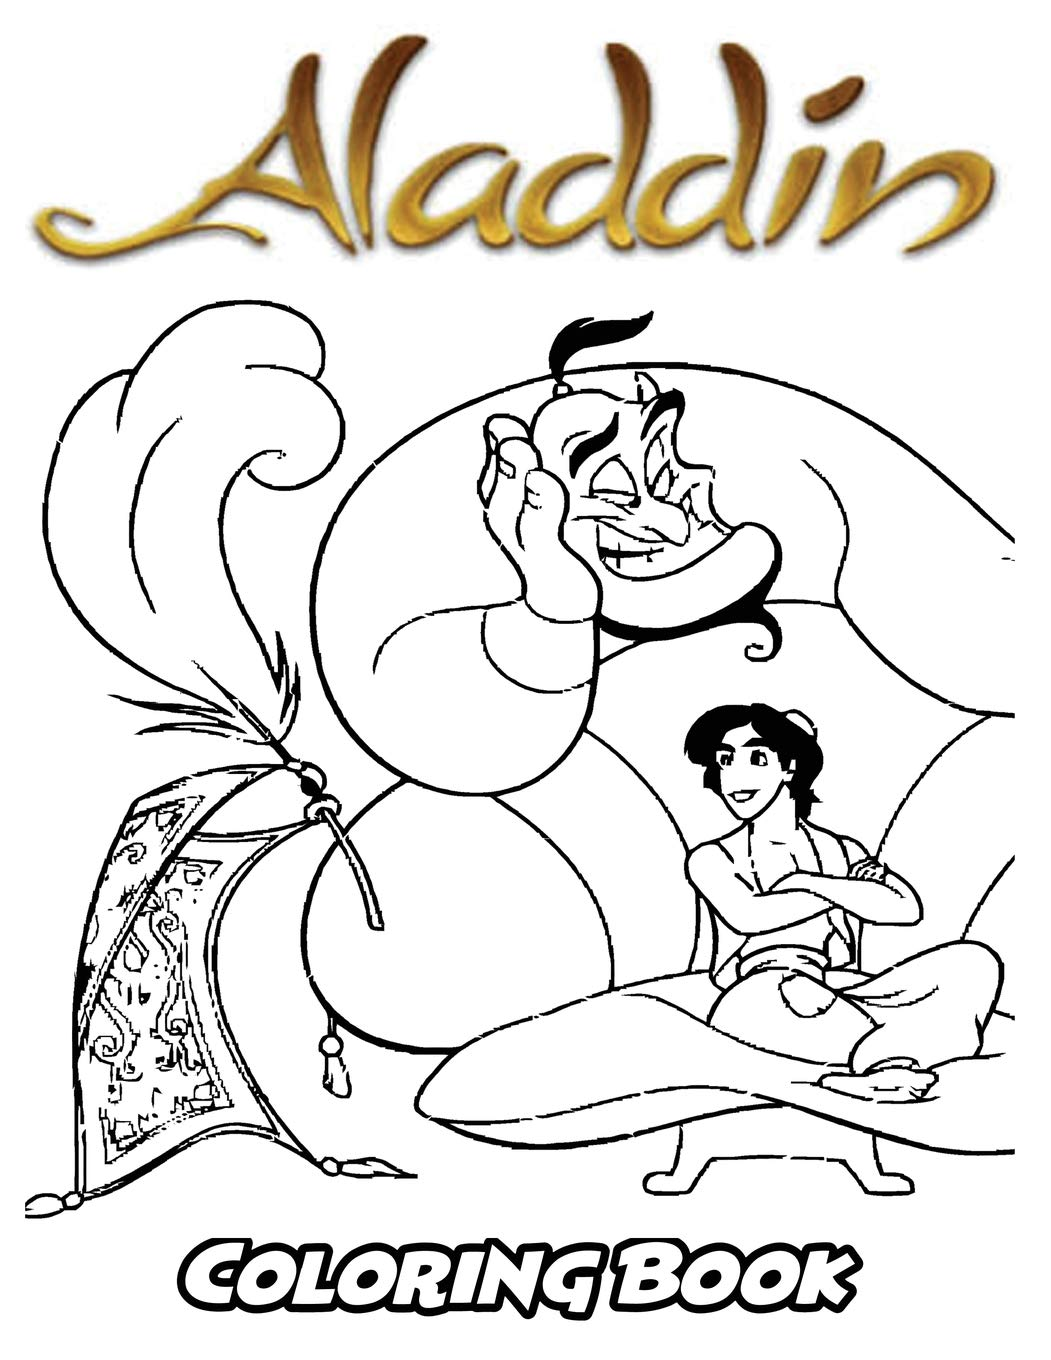 Buy Aladdin Coloring Book: Coloring Book for Kids and Adults ...